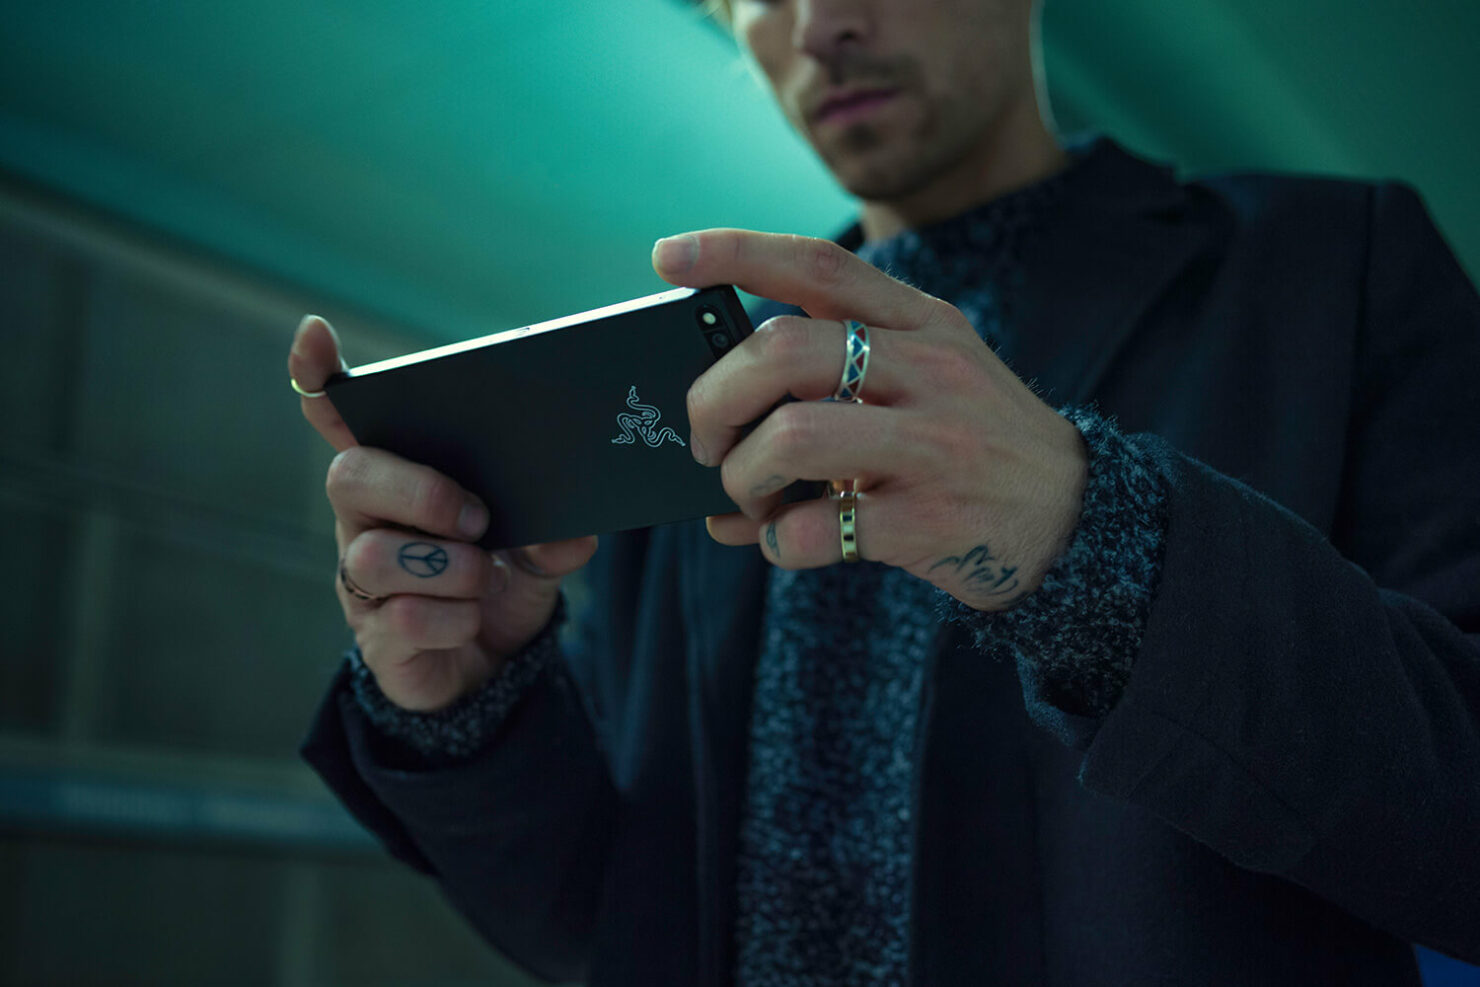 razer-phone-official-images-2